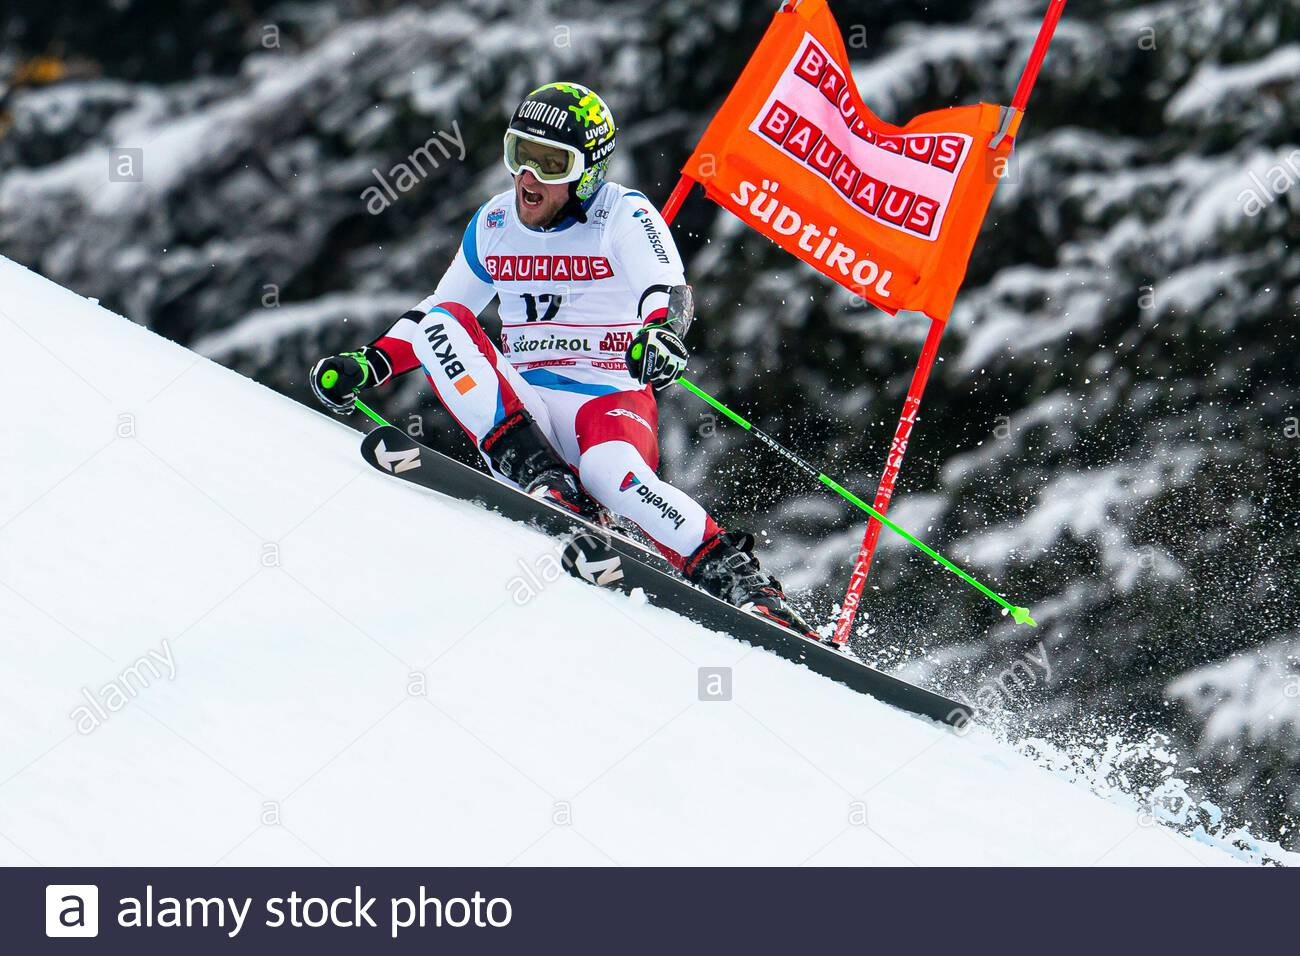 Alta Badia, Italy 22 December 2019.  MURISIER Justin (Sui) competing in the Audi Fis Alpine Skiing World Cup Men's Giant Slalom on the Gran Risa Cours Stock Photo